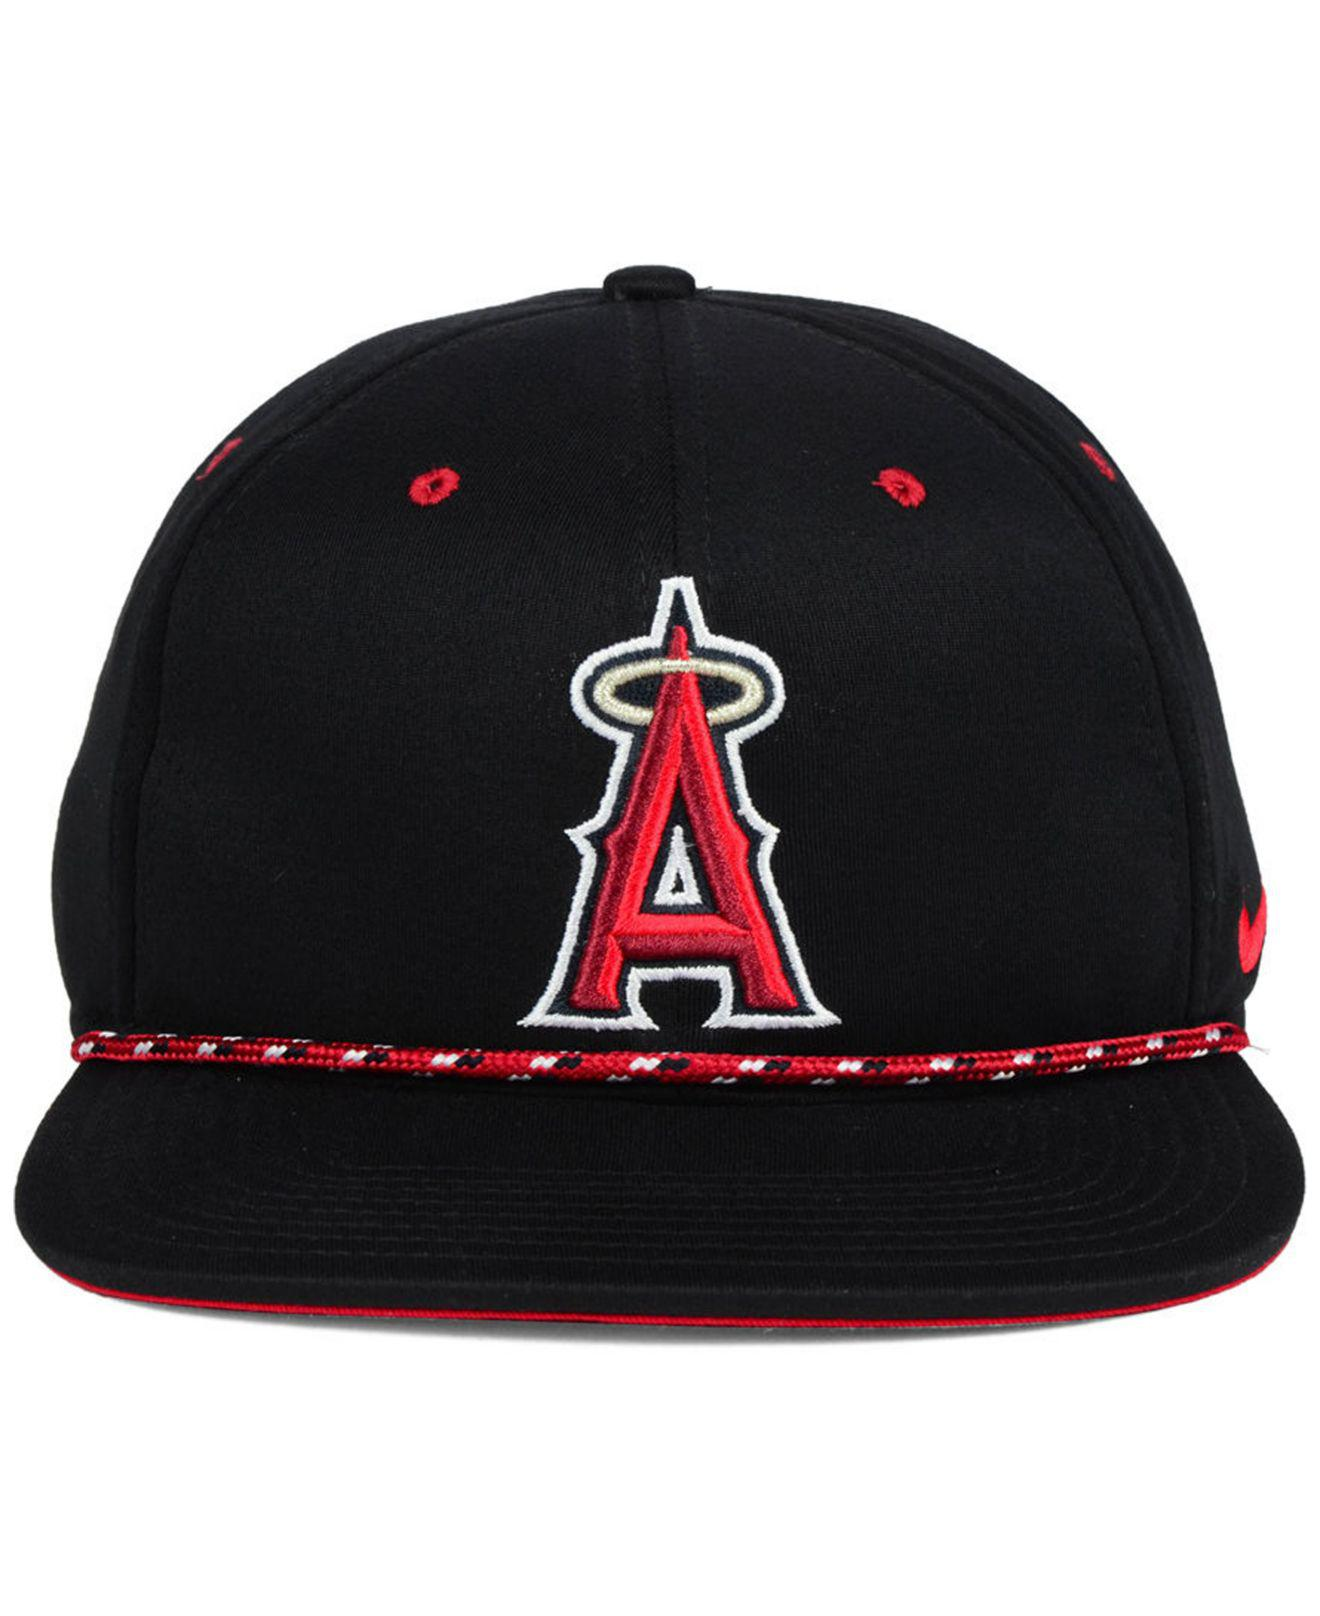 9eee1f8d74c2c ... clearance lyst nike los angeles angels string bill snapback cap in  black for men 57957 2e31b